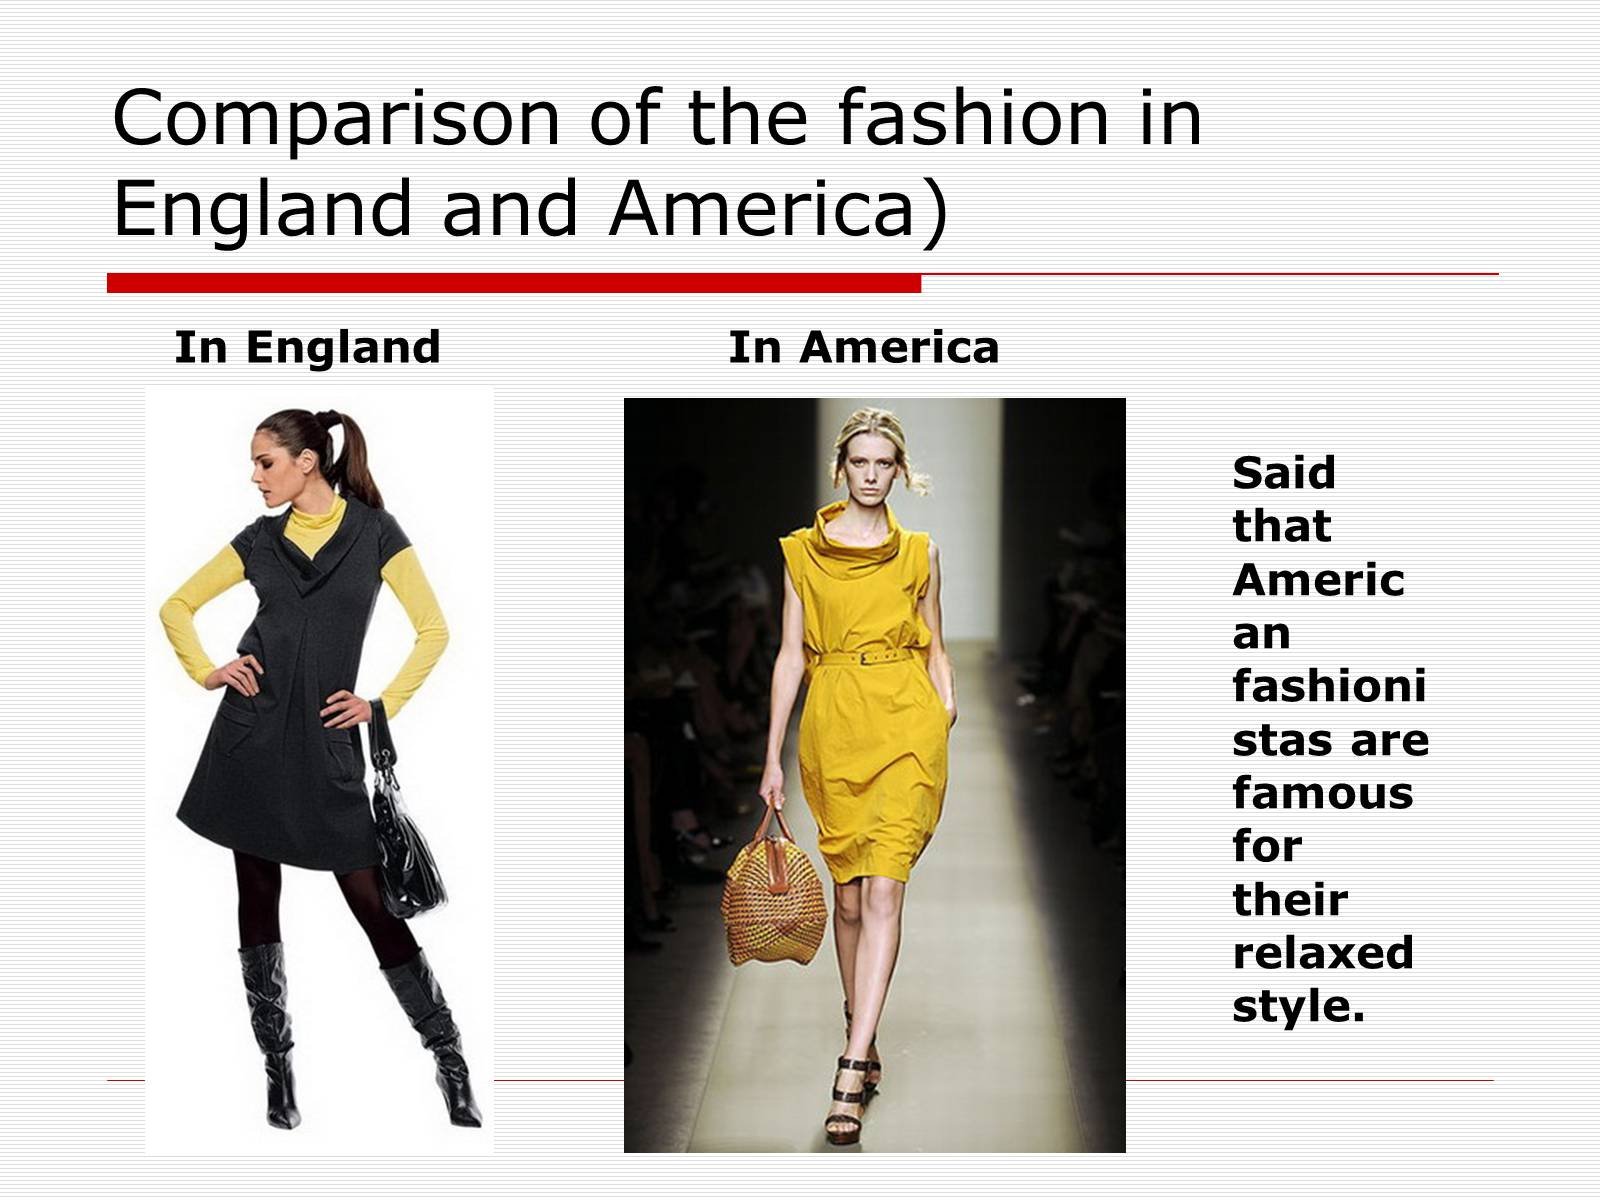 Презентація на тему «Comparison of the fashion in England and America» - Слайд #35